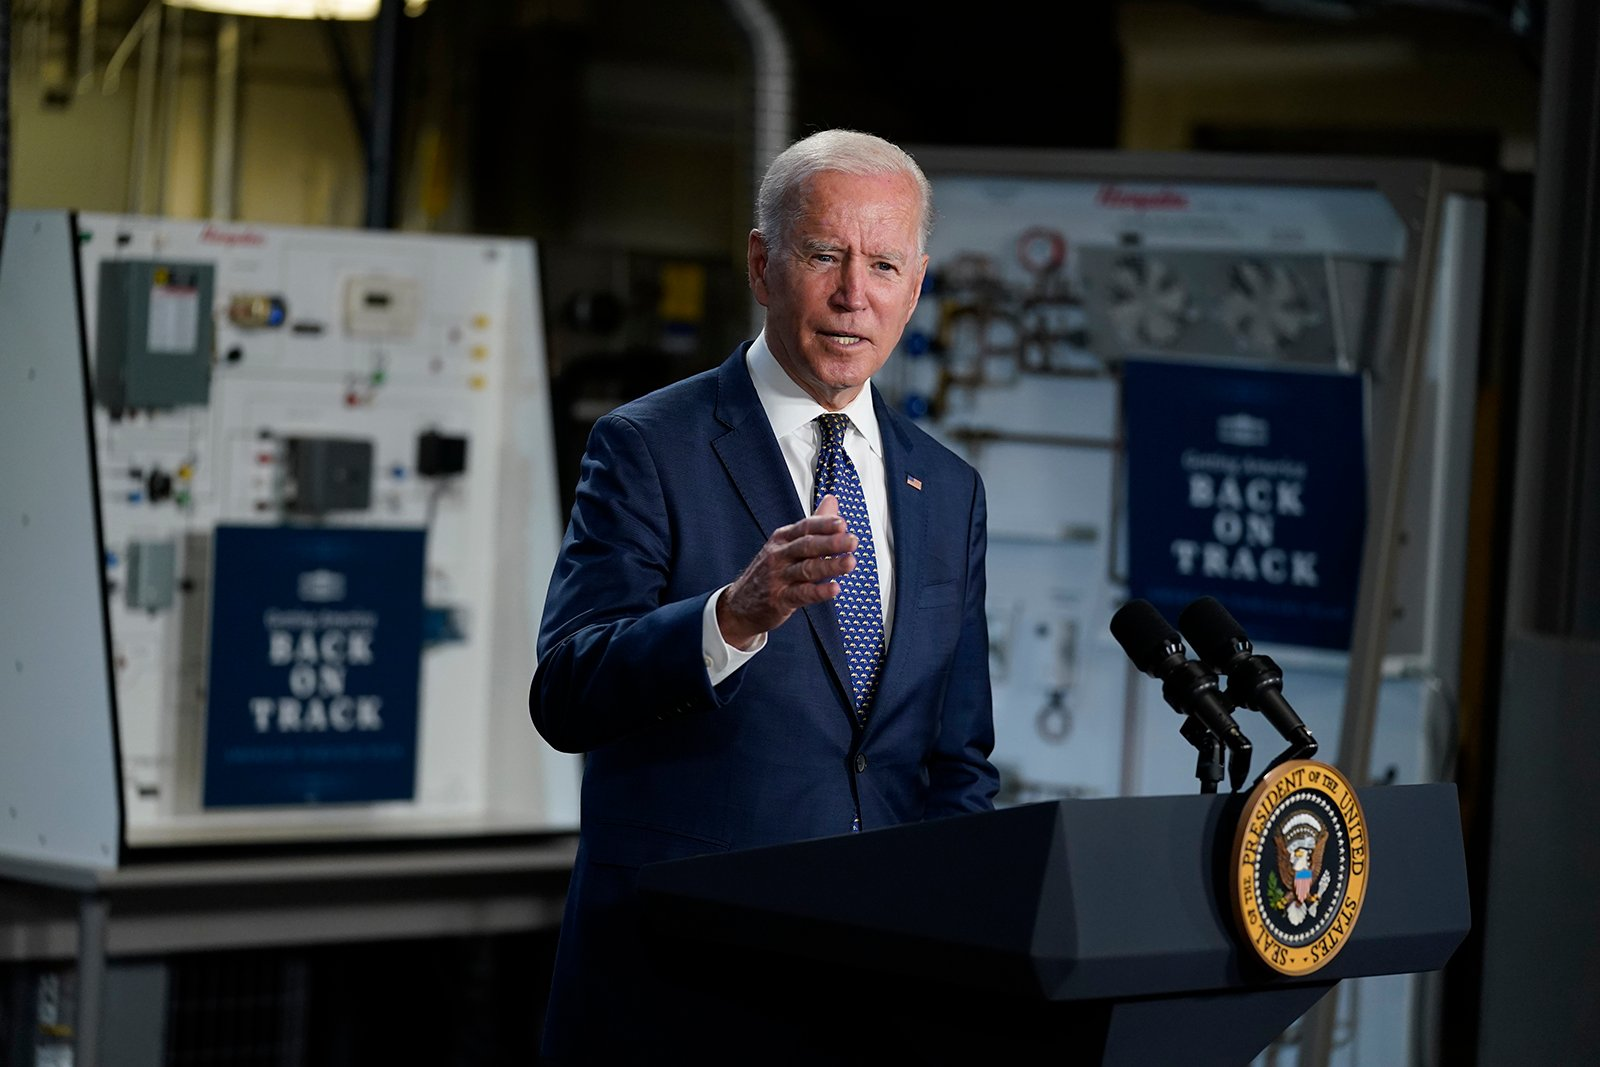 President Joe Biden speaks at Tidewater Community College, Monday, May 3, 2021, in Portsmouth, Va. (AP Photo/Evan Vucci)